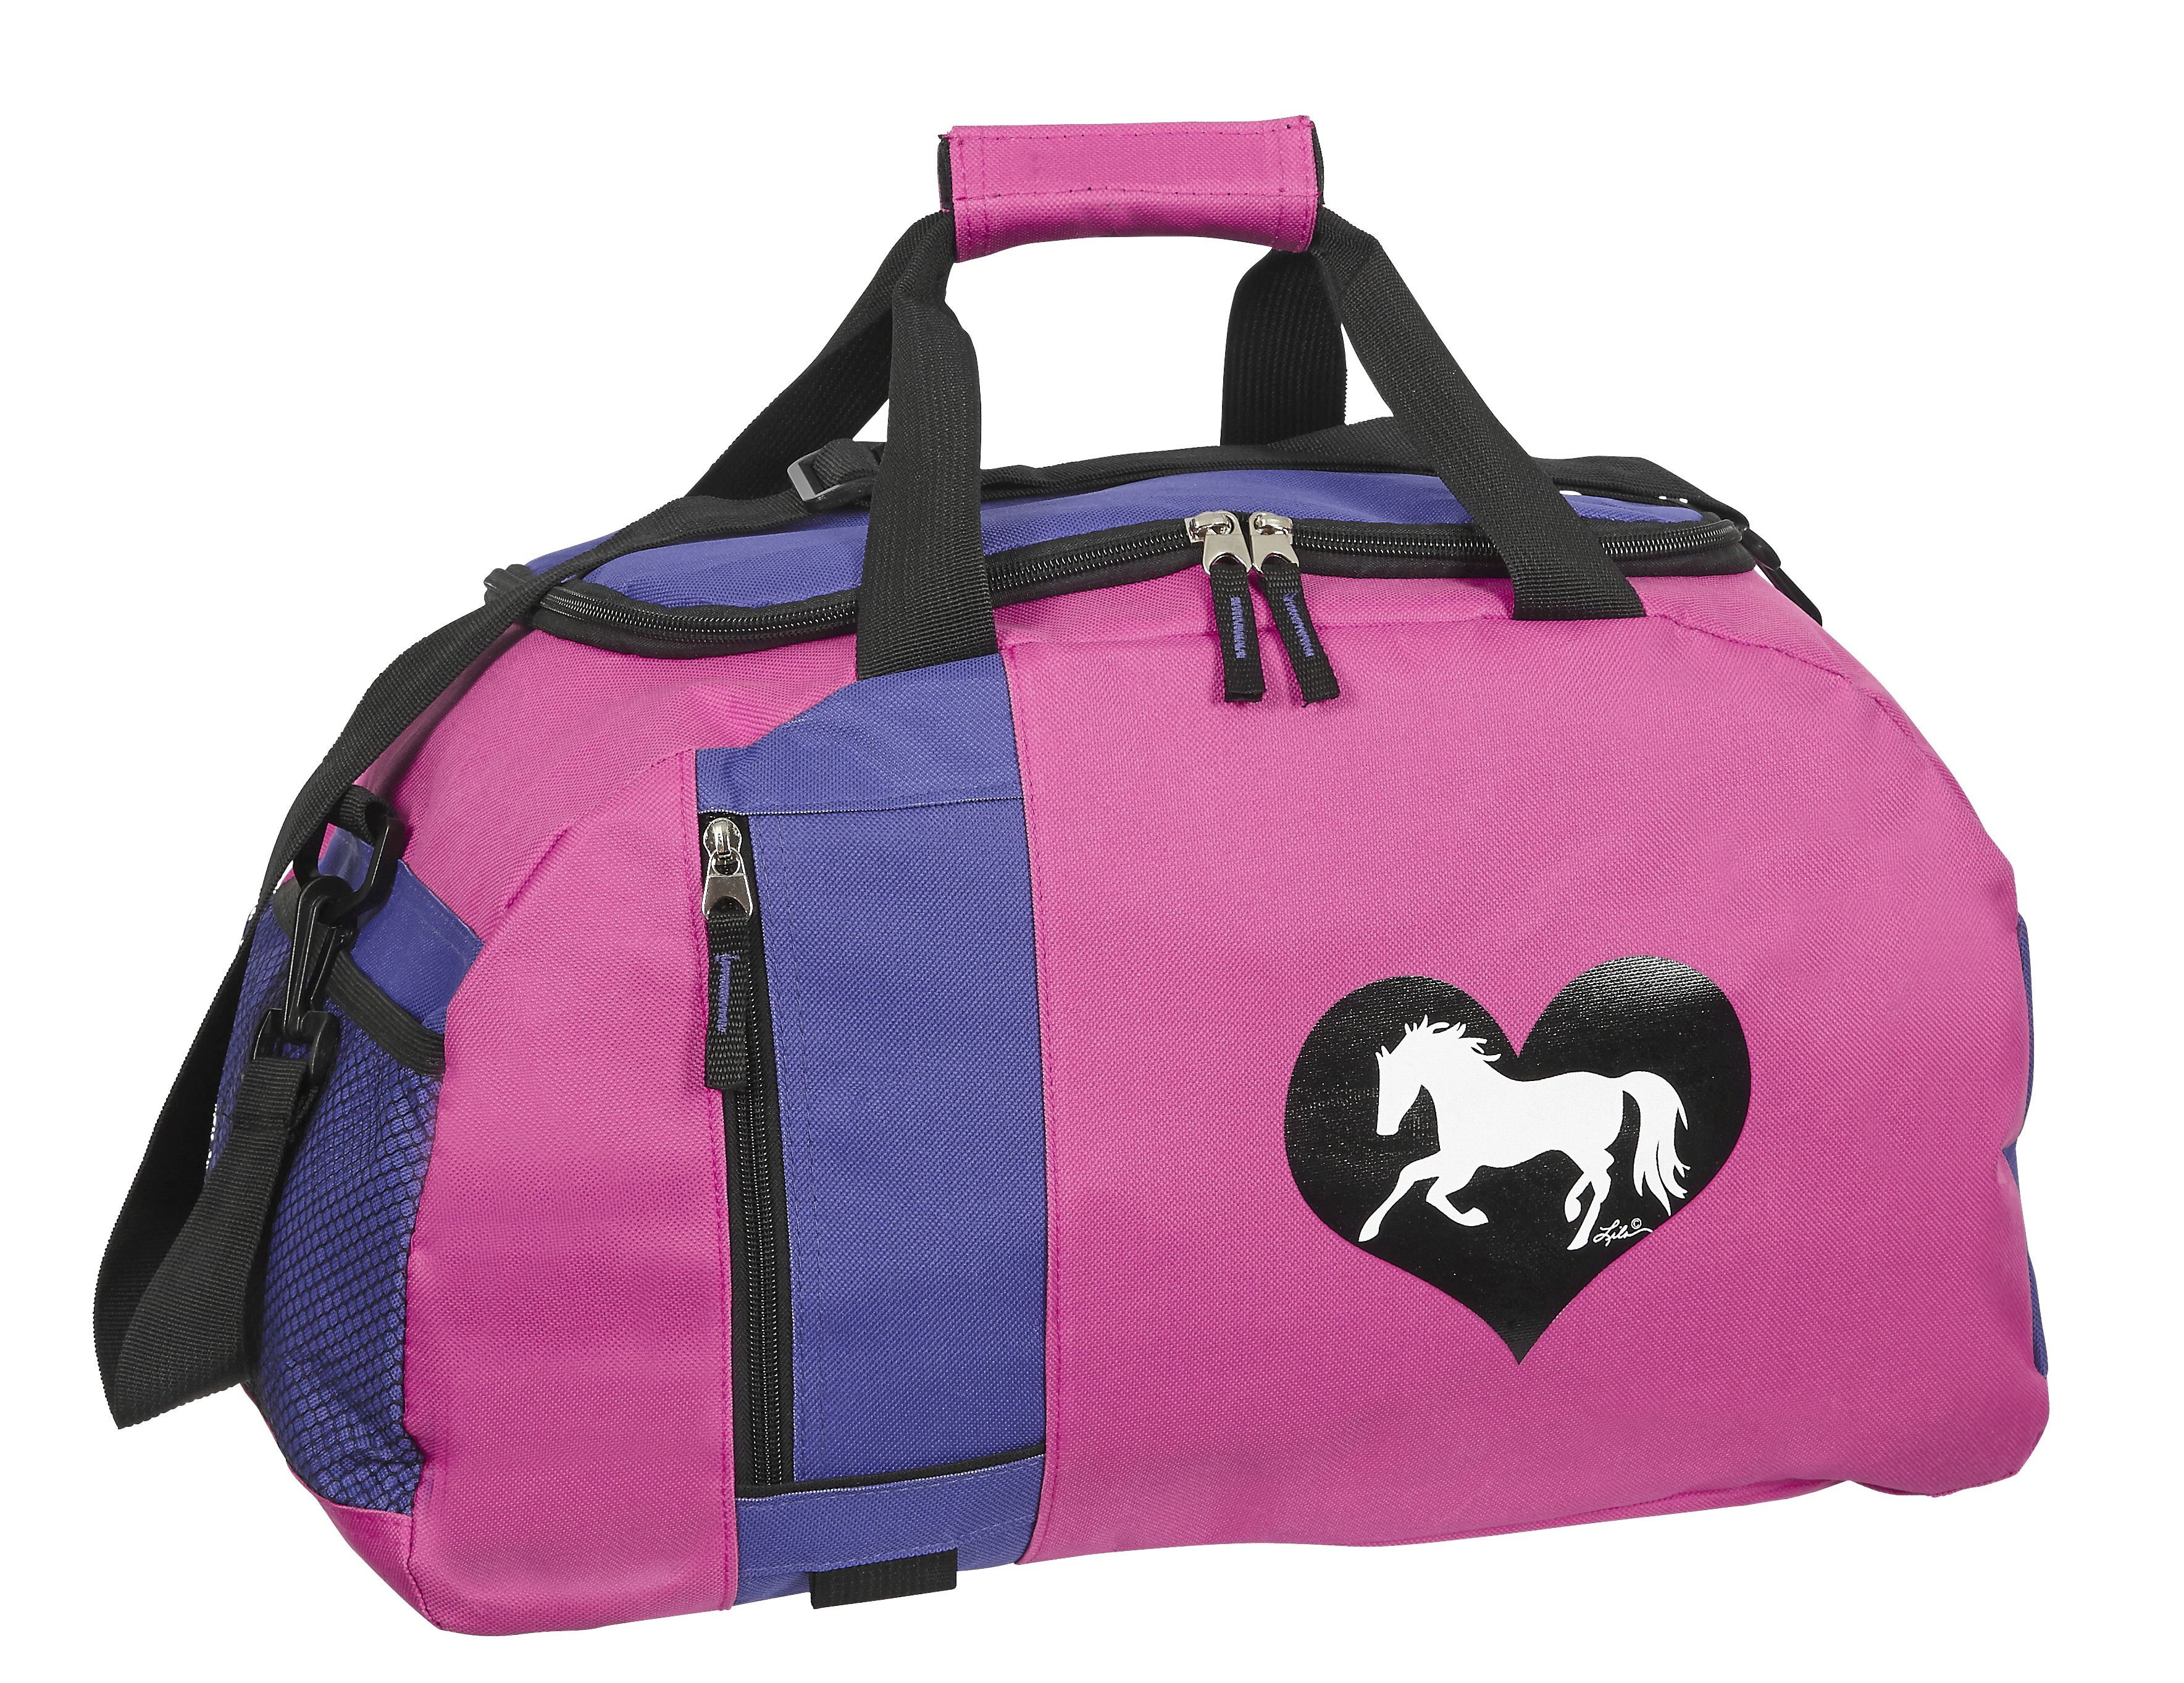 Purple stable horse and equestrian products for Jackson galaxy mojo maker air wand